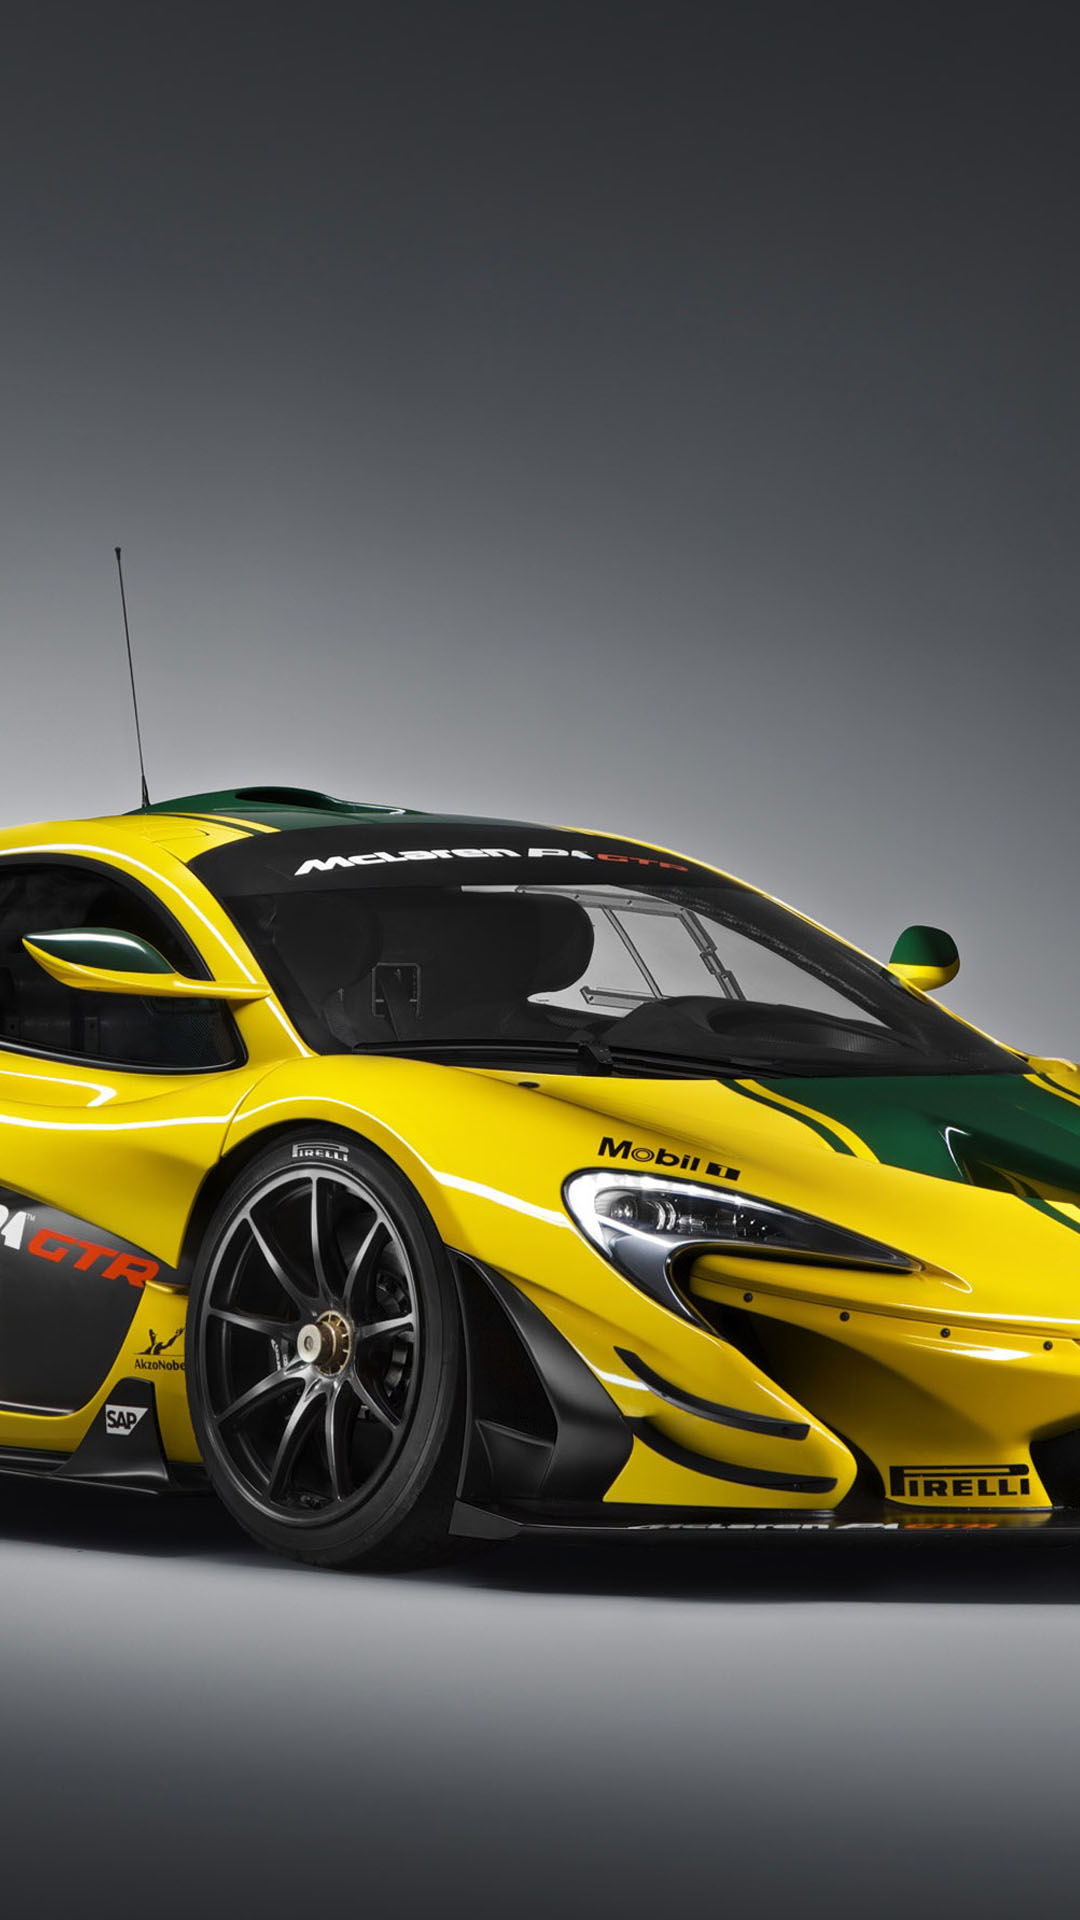 McLaren P1 GTR Limited Edition iPhone 6 and 6 Plus HD Wallpapers 1080x1920